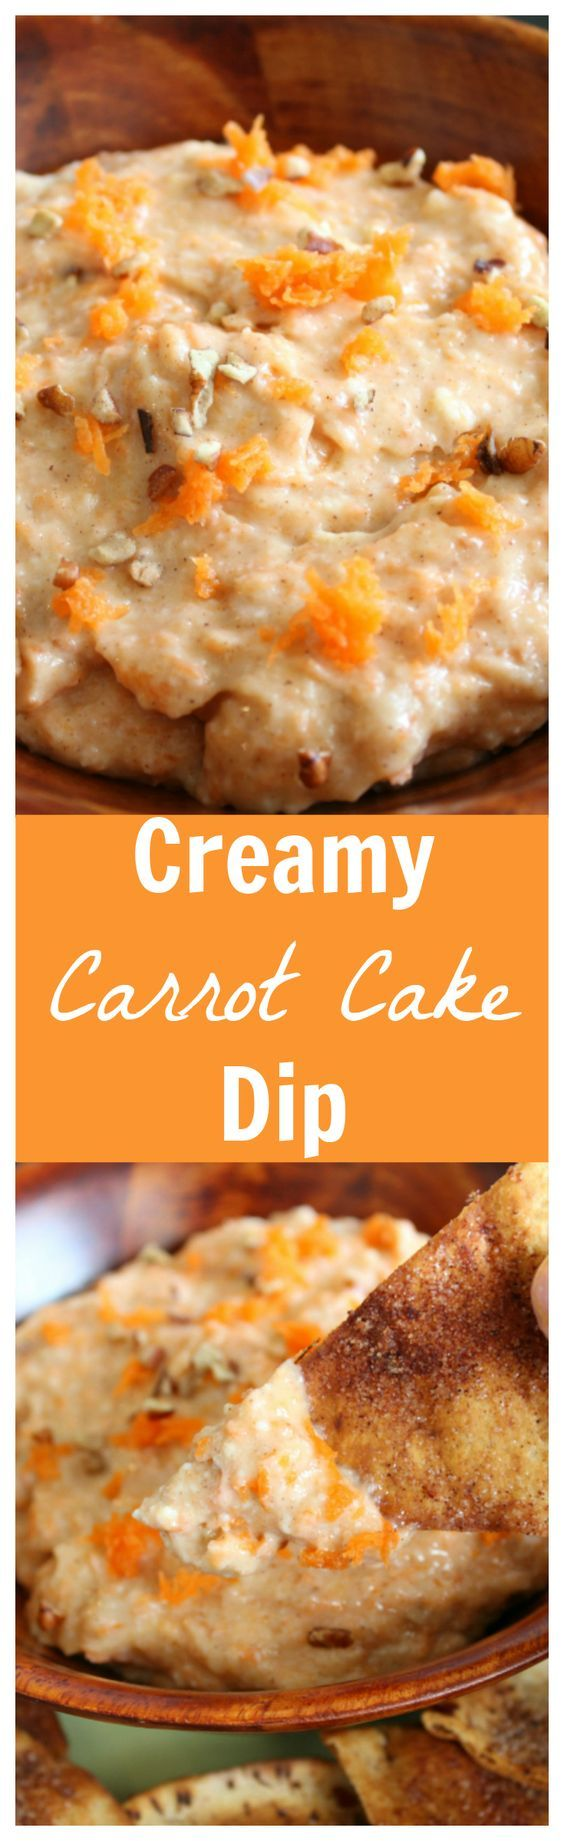 Creamy Carrot Cake Dip – All of your favorite carrot cake flavors, in dip form! It's super easy to make and perfect for Easter!